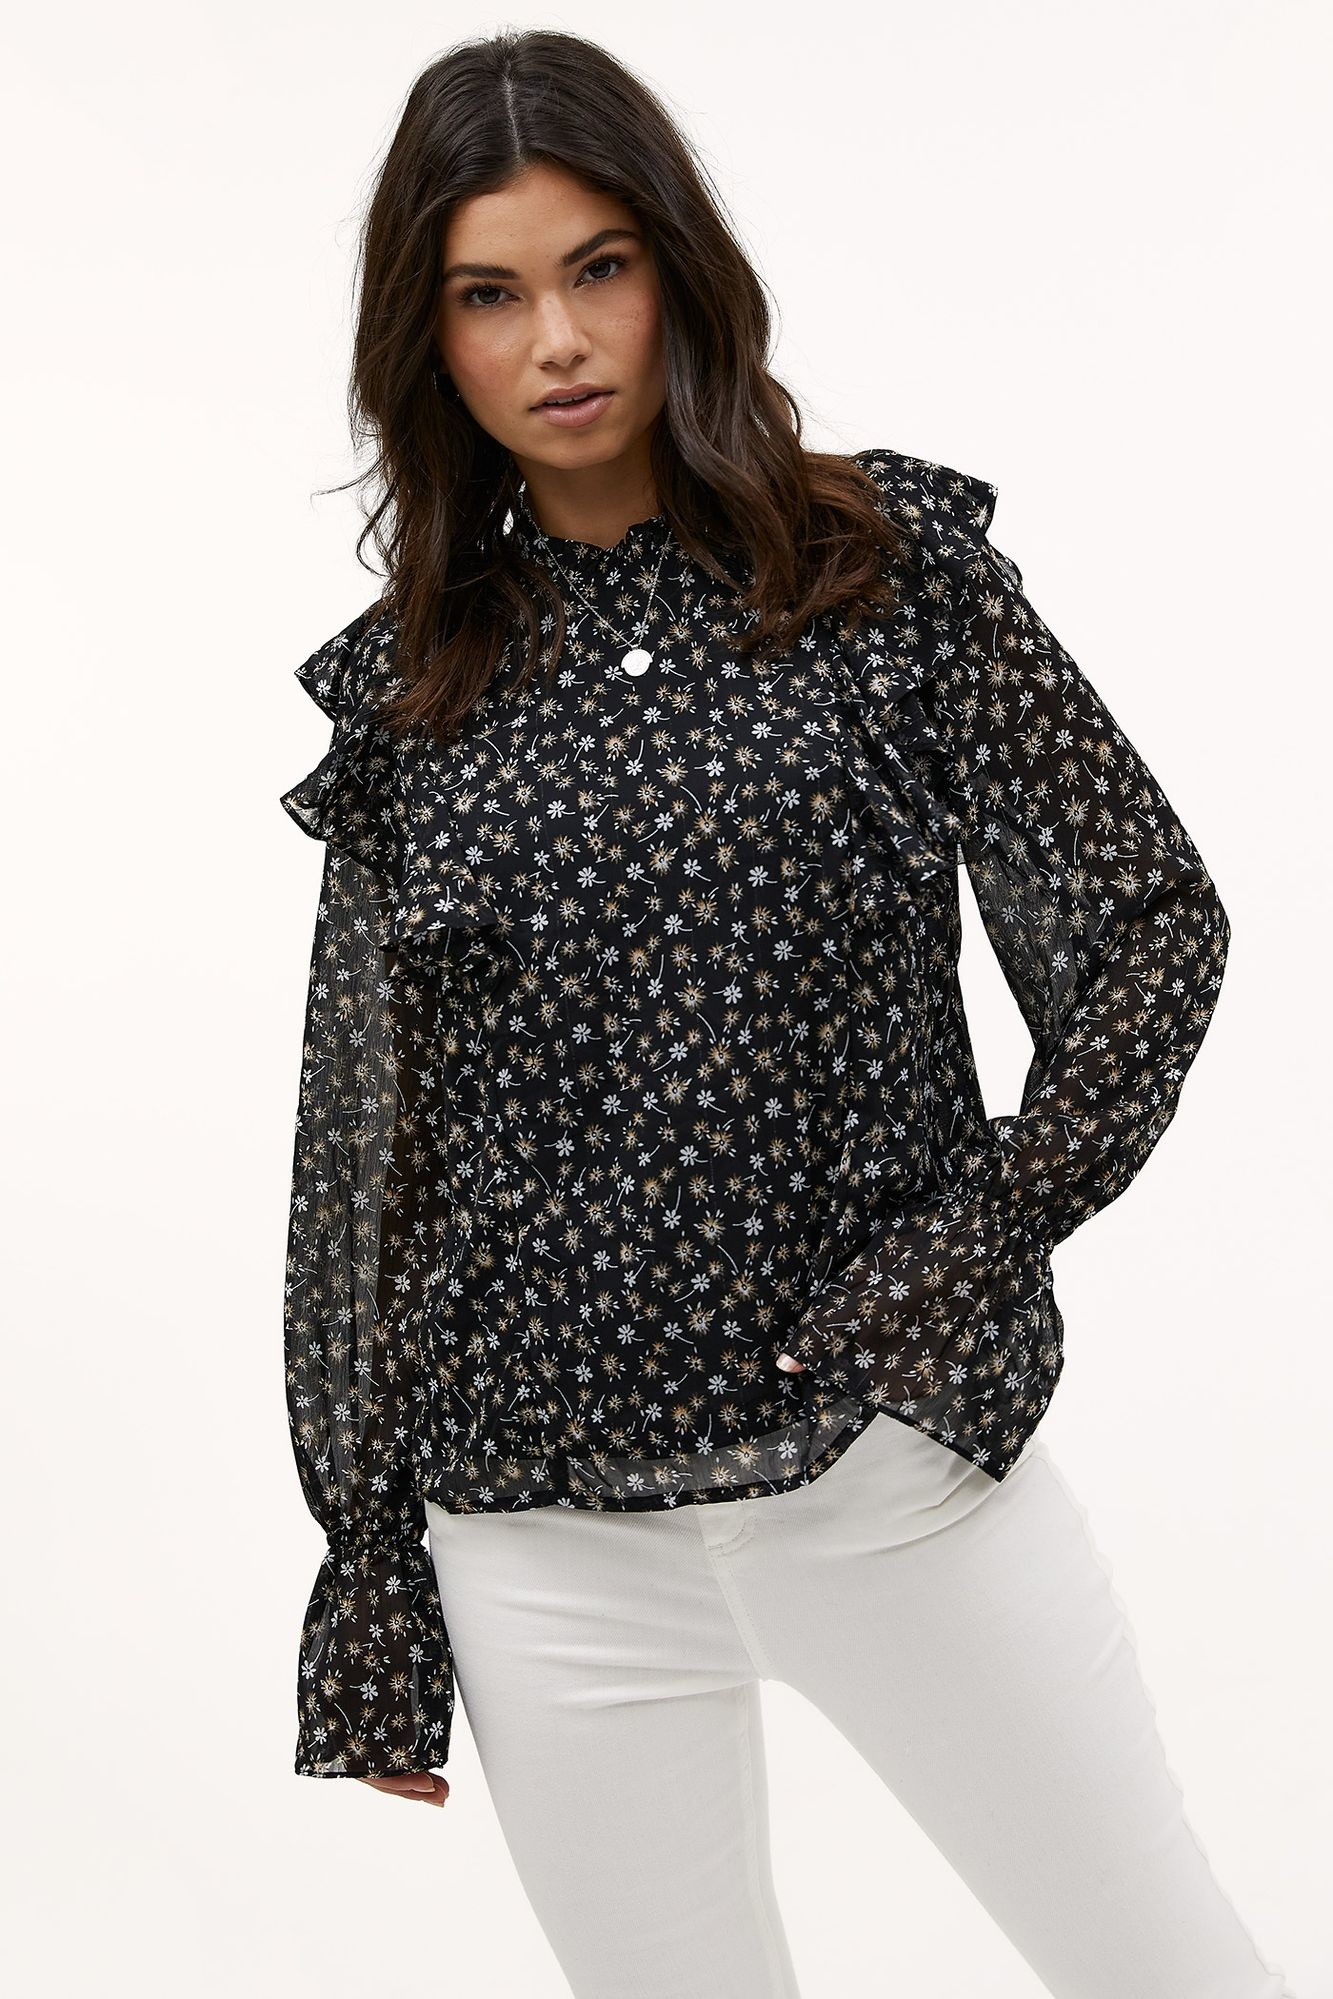 Blouse Day in town Black-3